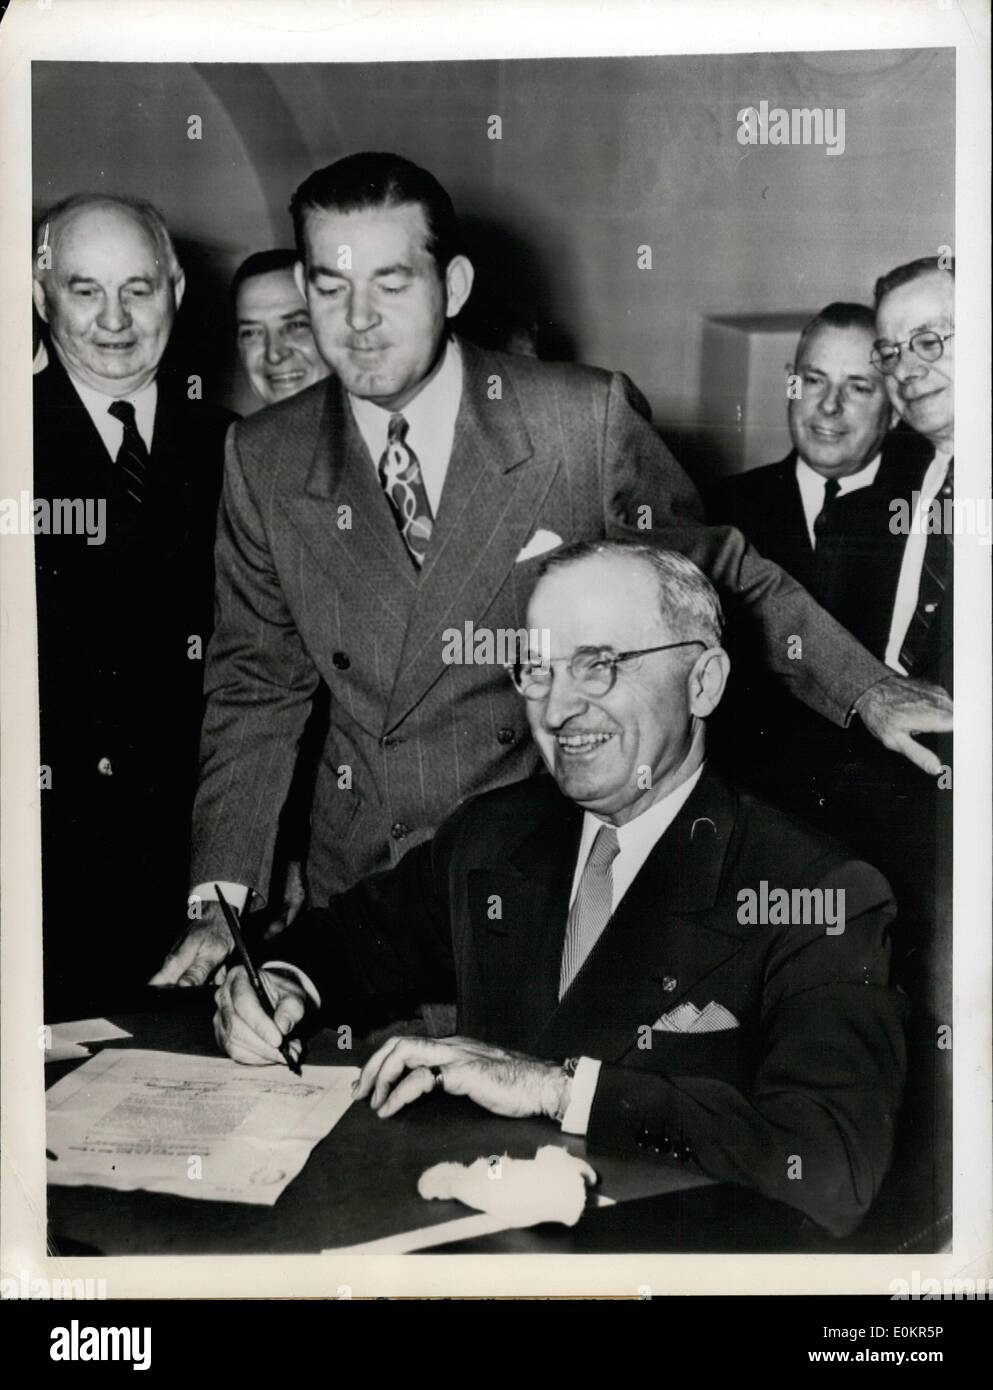 May 05, 1946 - More Money For Postal Employees: Washington, D.C. President Harry S. Truman affixes his signature to the postal pay raise bill in Washington, D.C., May 21, as Postmaster General Robert E. Hannegan looks on in the presence of other postal officials, rear. It gives all postal employees a raise of 00 per year and corrects cetain losses incurred when the 10% increase last year eliminated overtime. - Stock Image